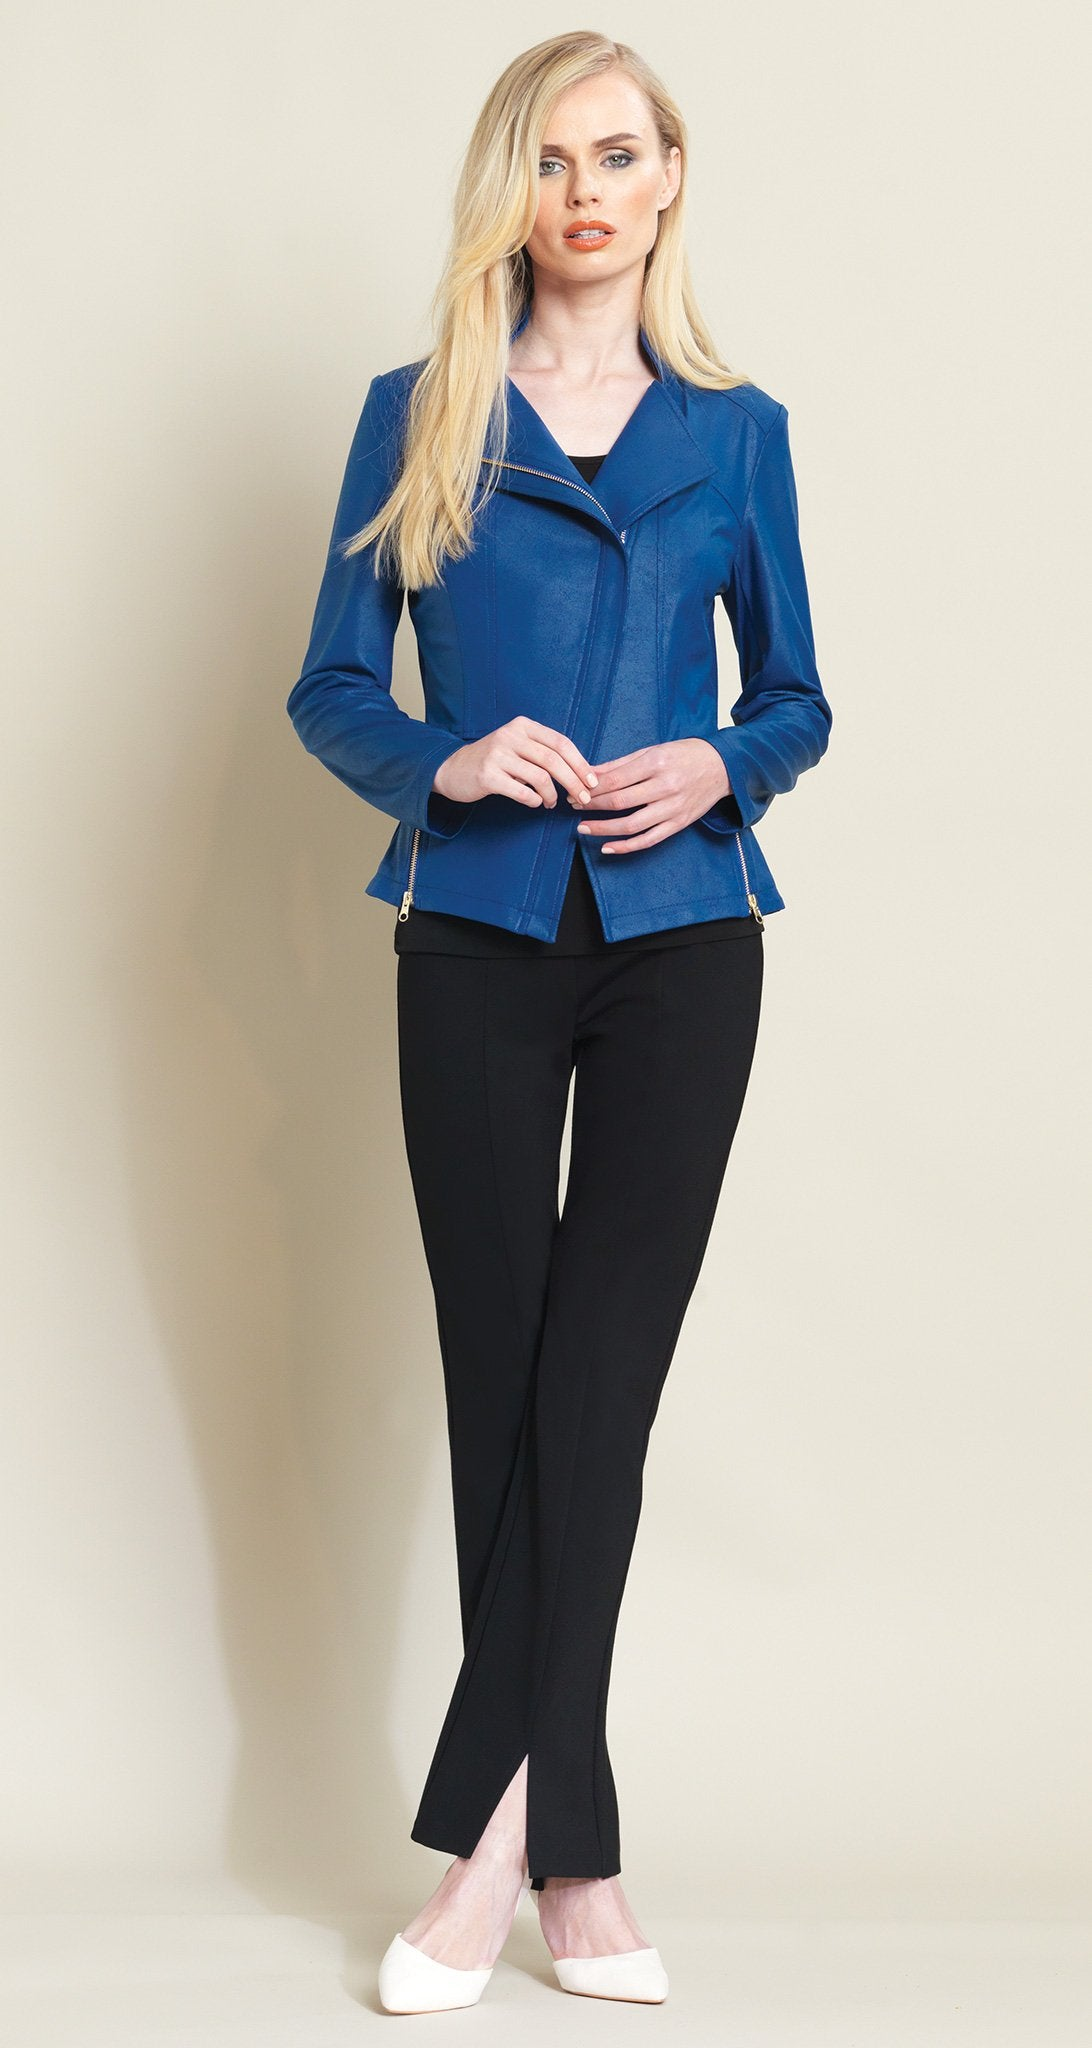 Liquid Leather Zip Jacket - Cobalt - As Seen on Today Show! - Clara Sunwoo